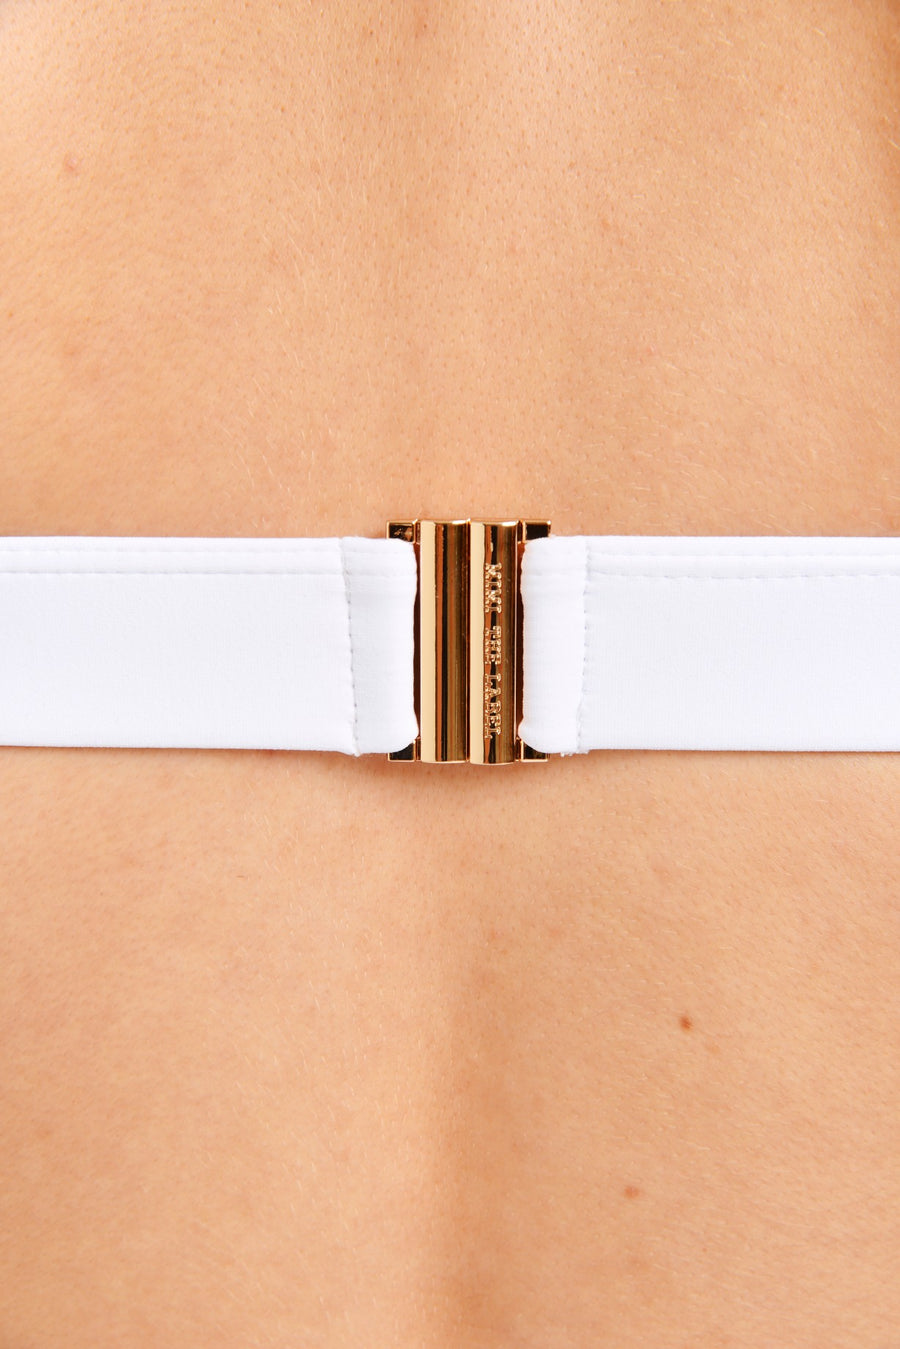 Close up of gold clasp on a white swimsuit top